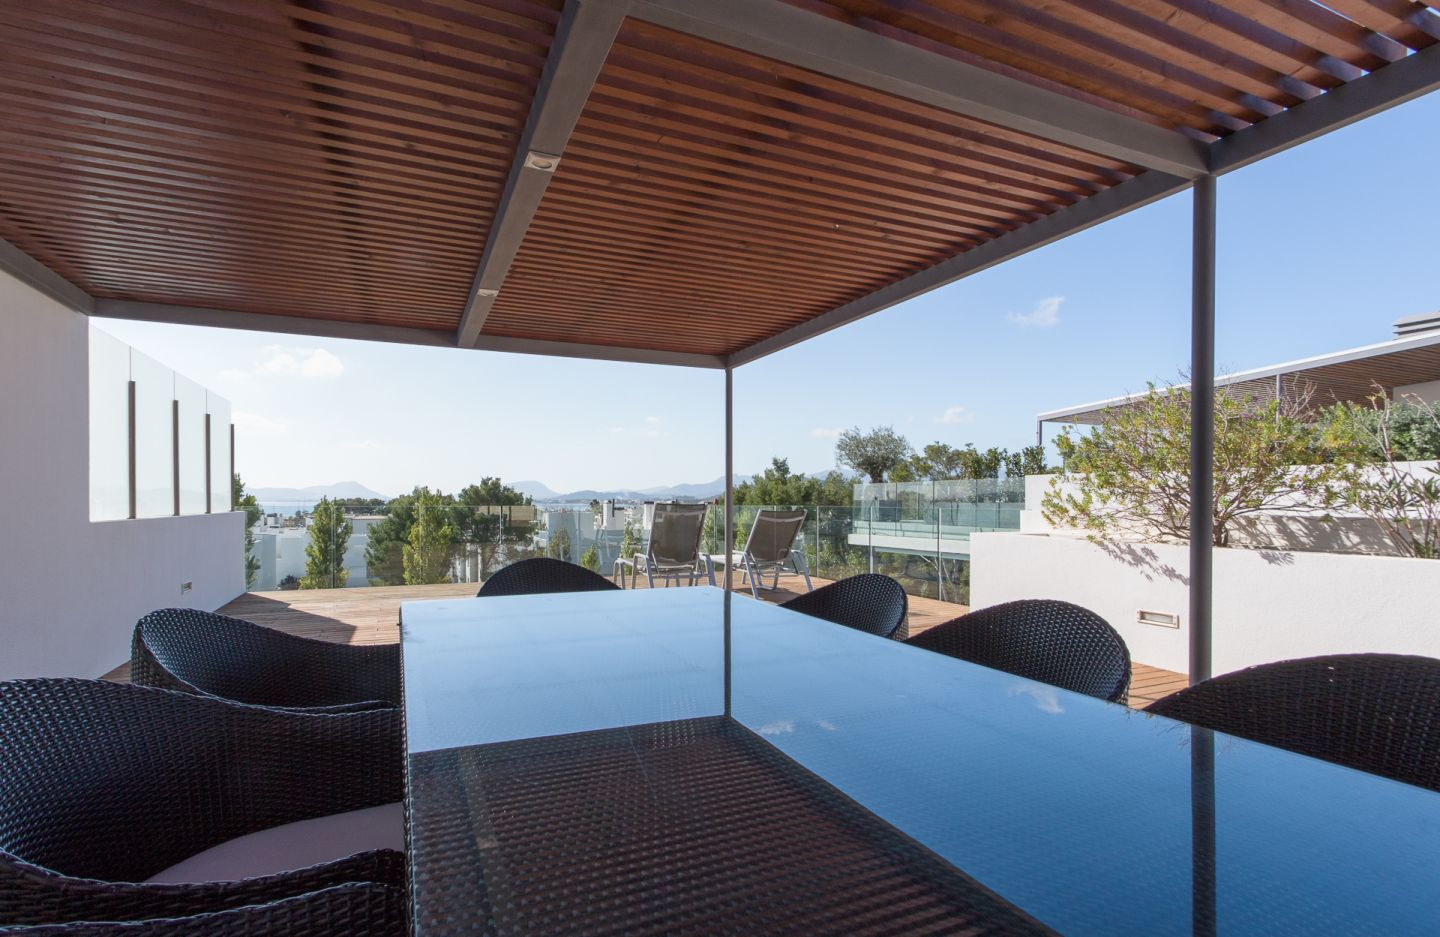 4 Bed Penthouse for sale in PUERTO POLLENSA 16